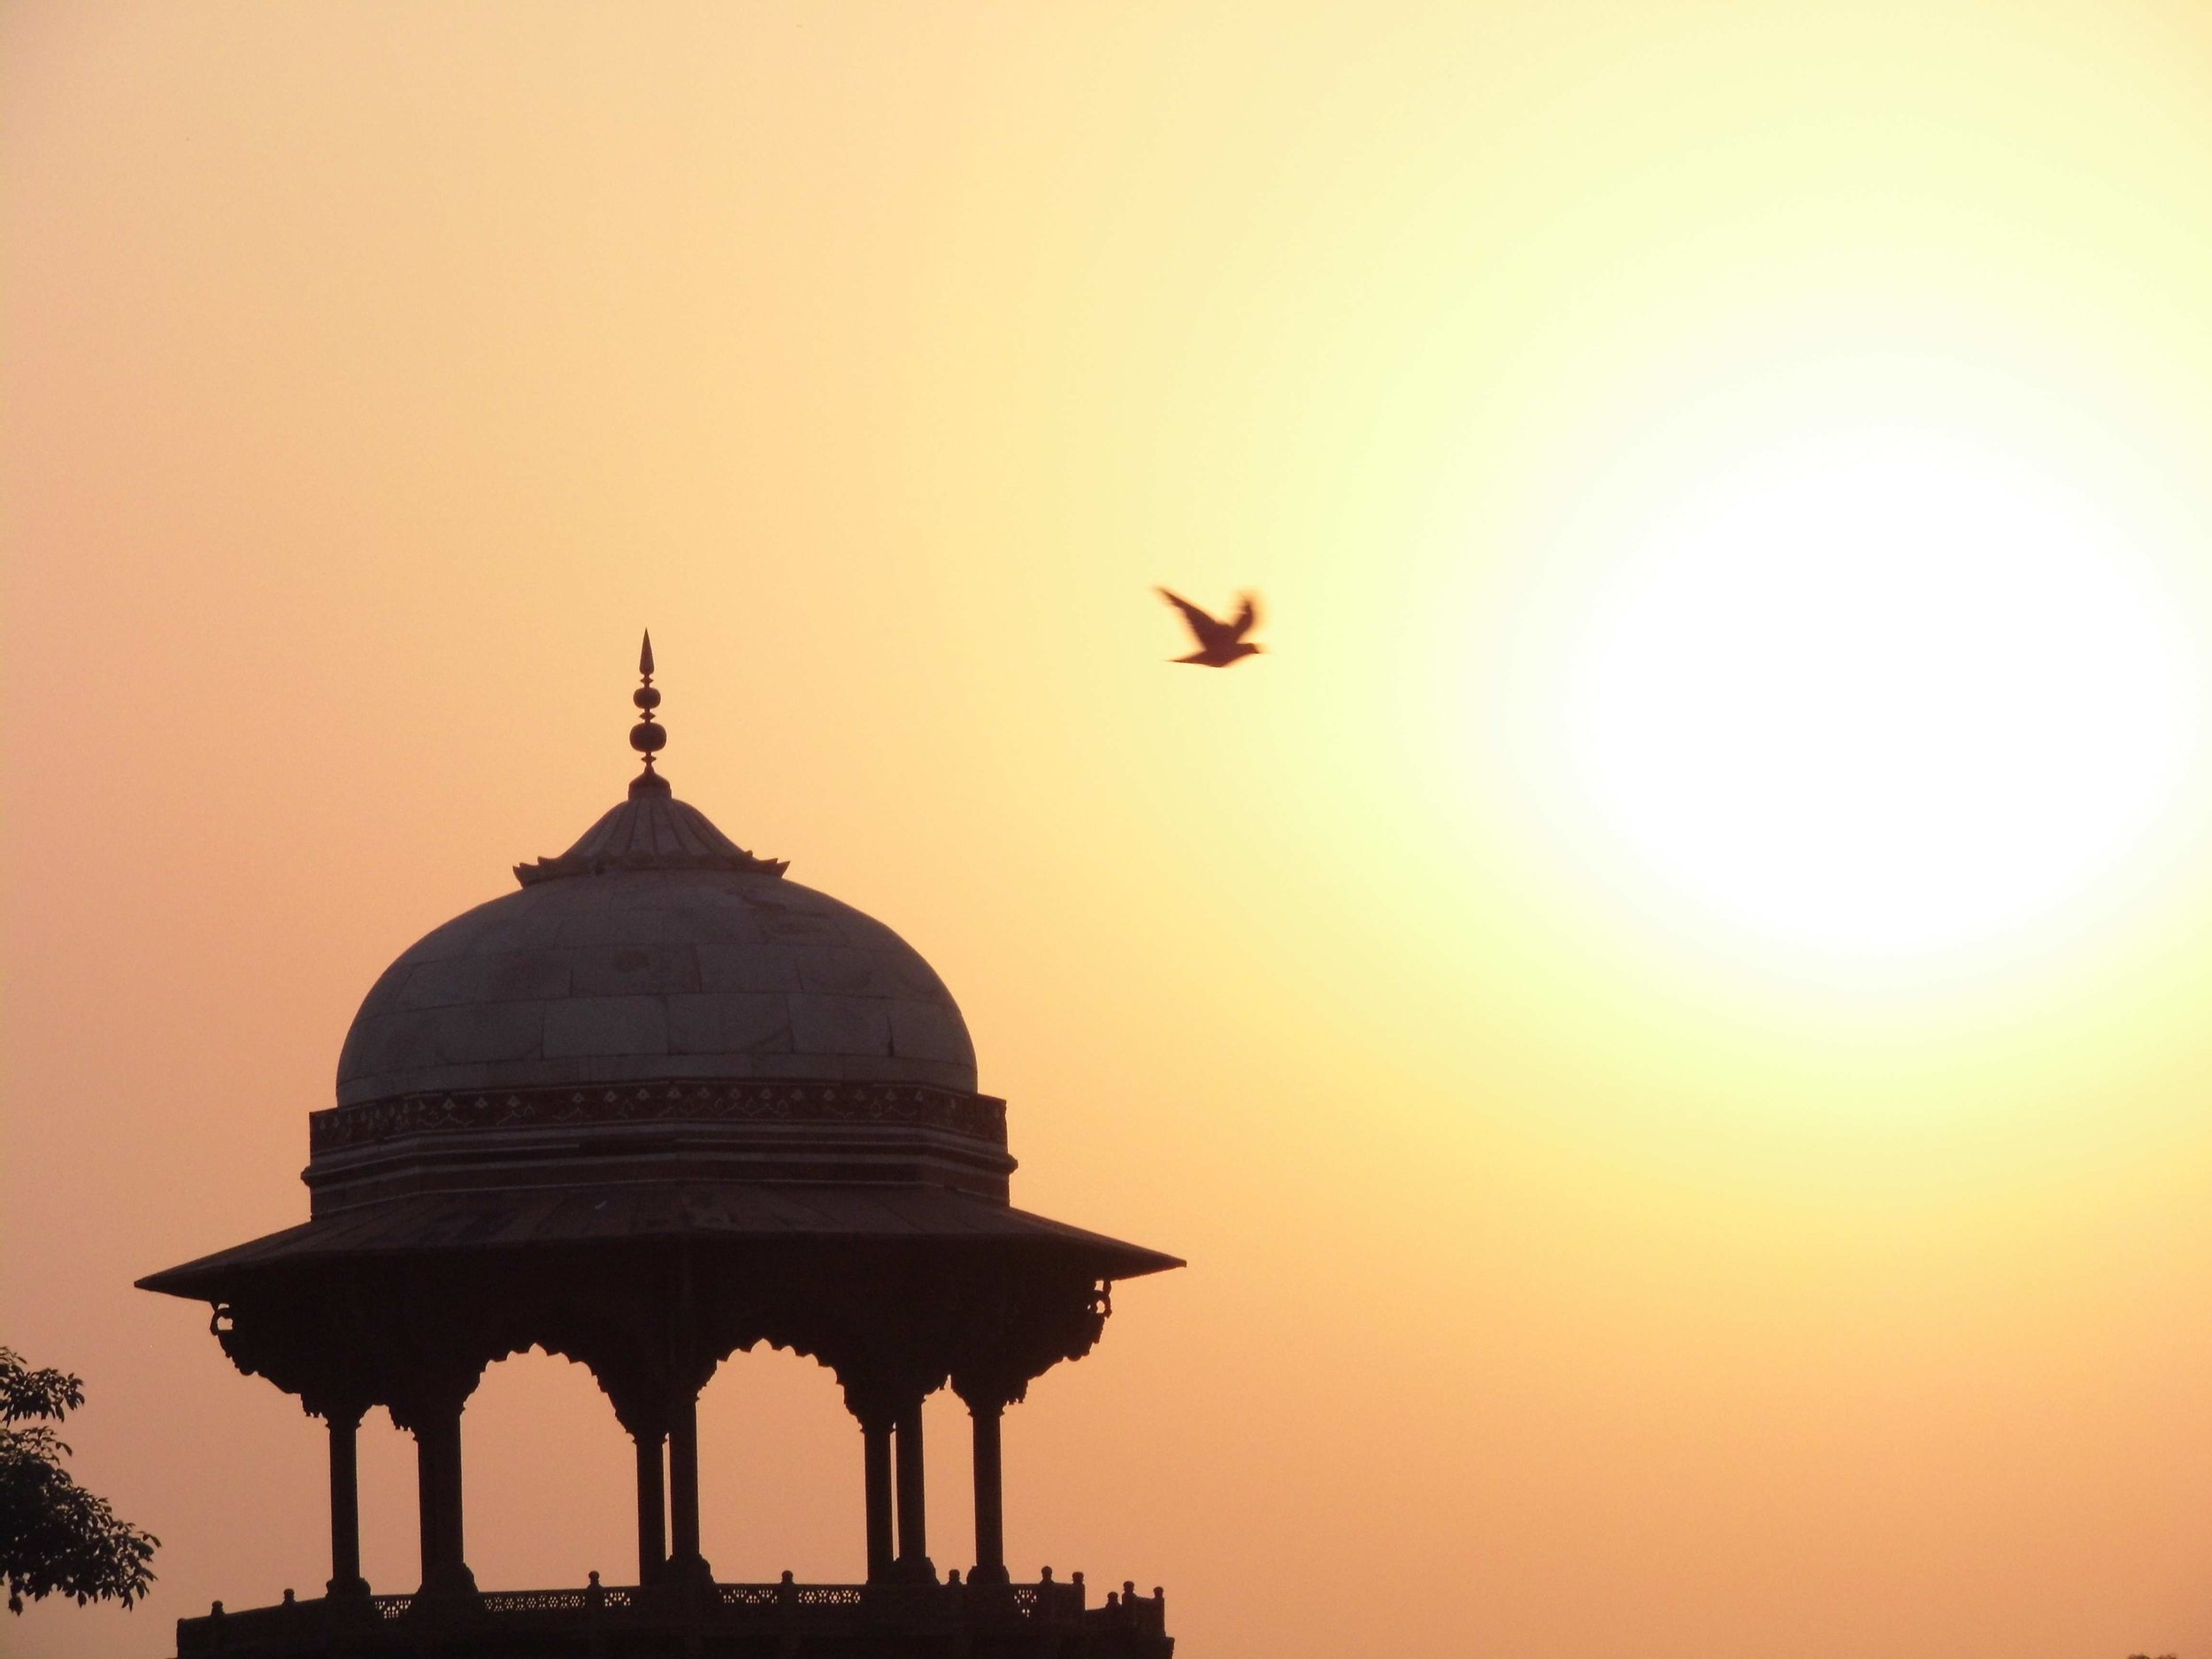 2 shots from India which sum up the building of the Taj Mahal at sunset and most take me back there.  Oliver Hartopp